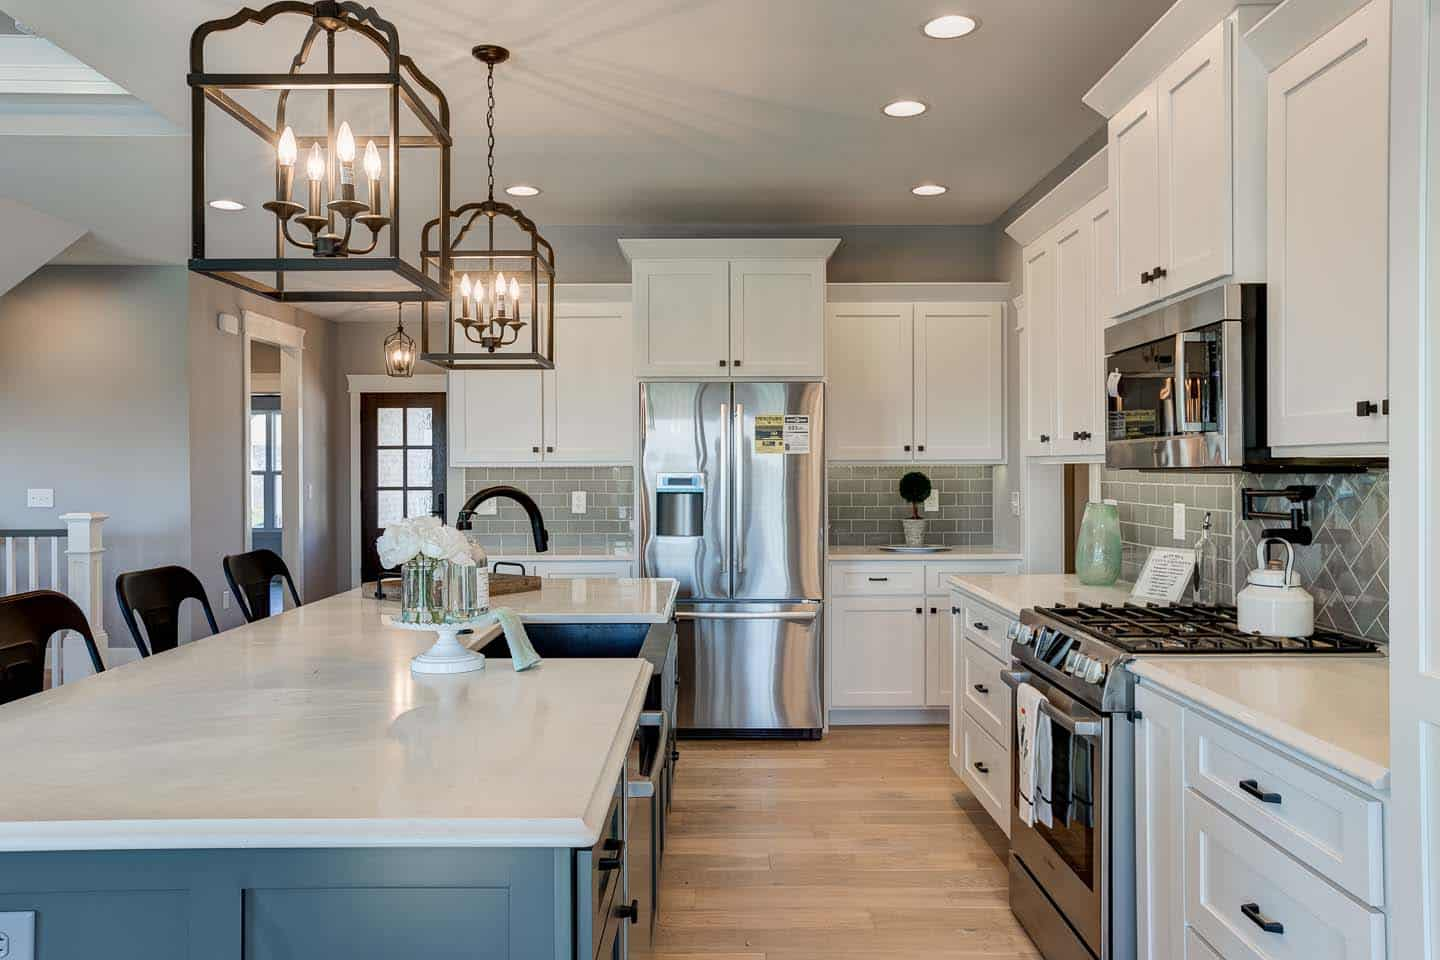 Evansville Parade of Homes | Reinbrecht Homes | Centerra Ridge Lot 156 Kitchen